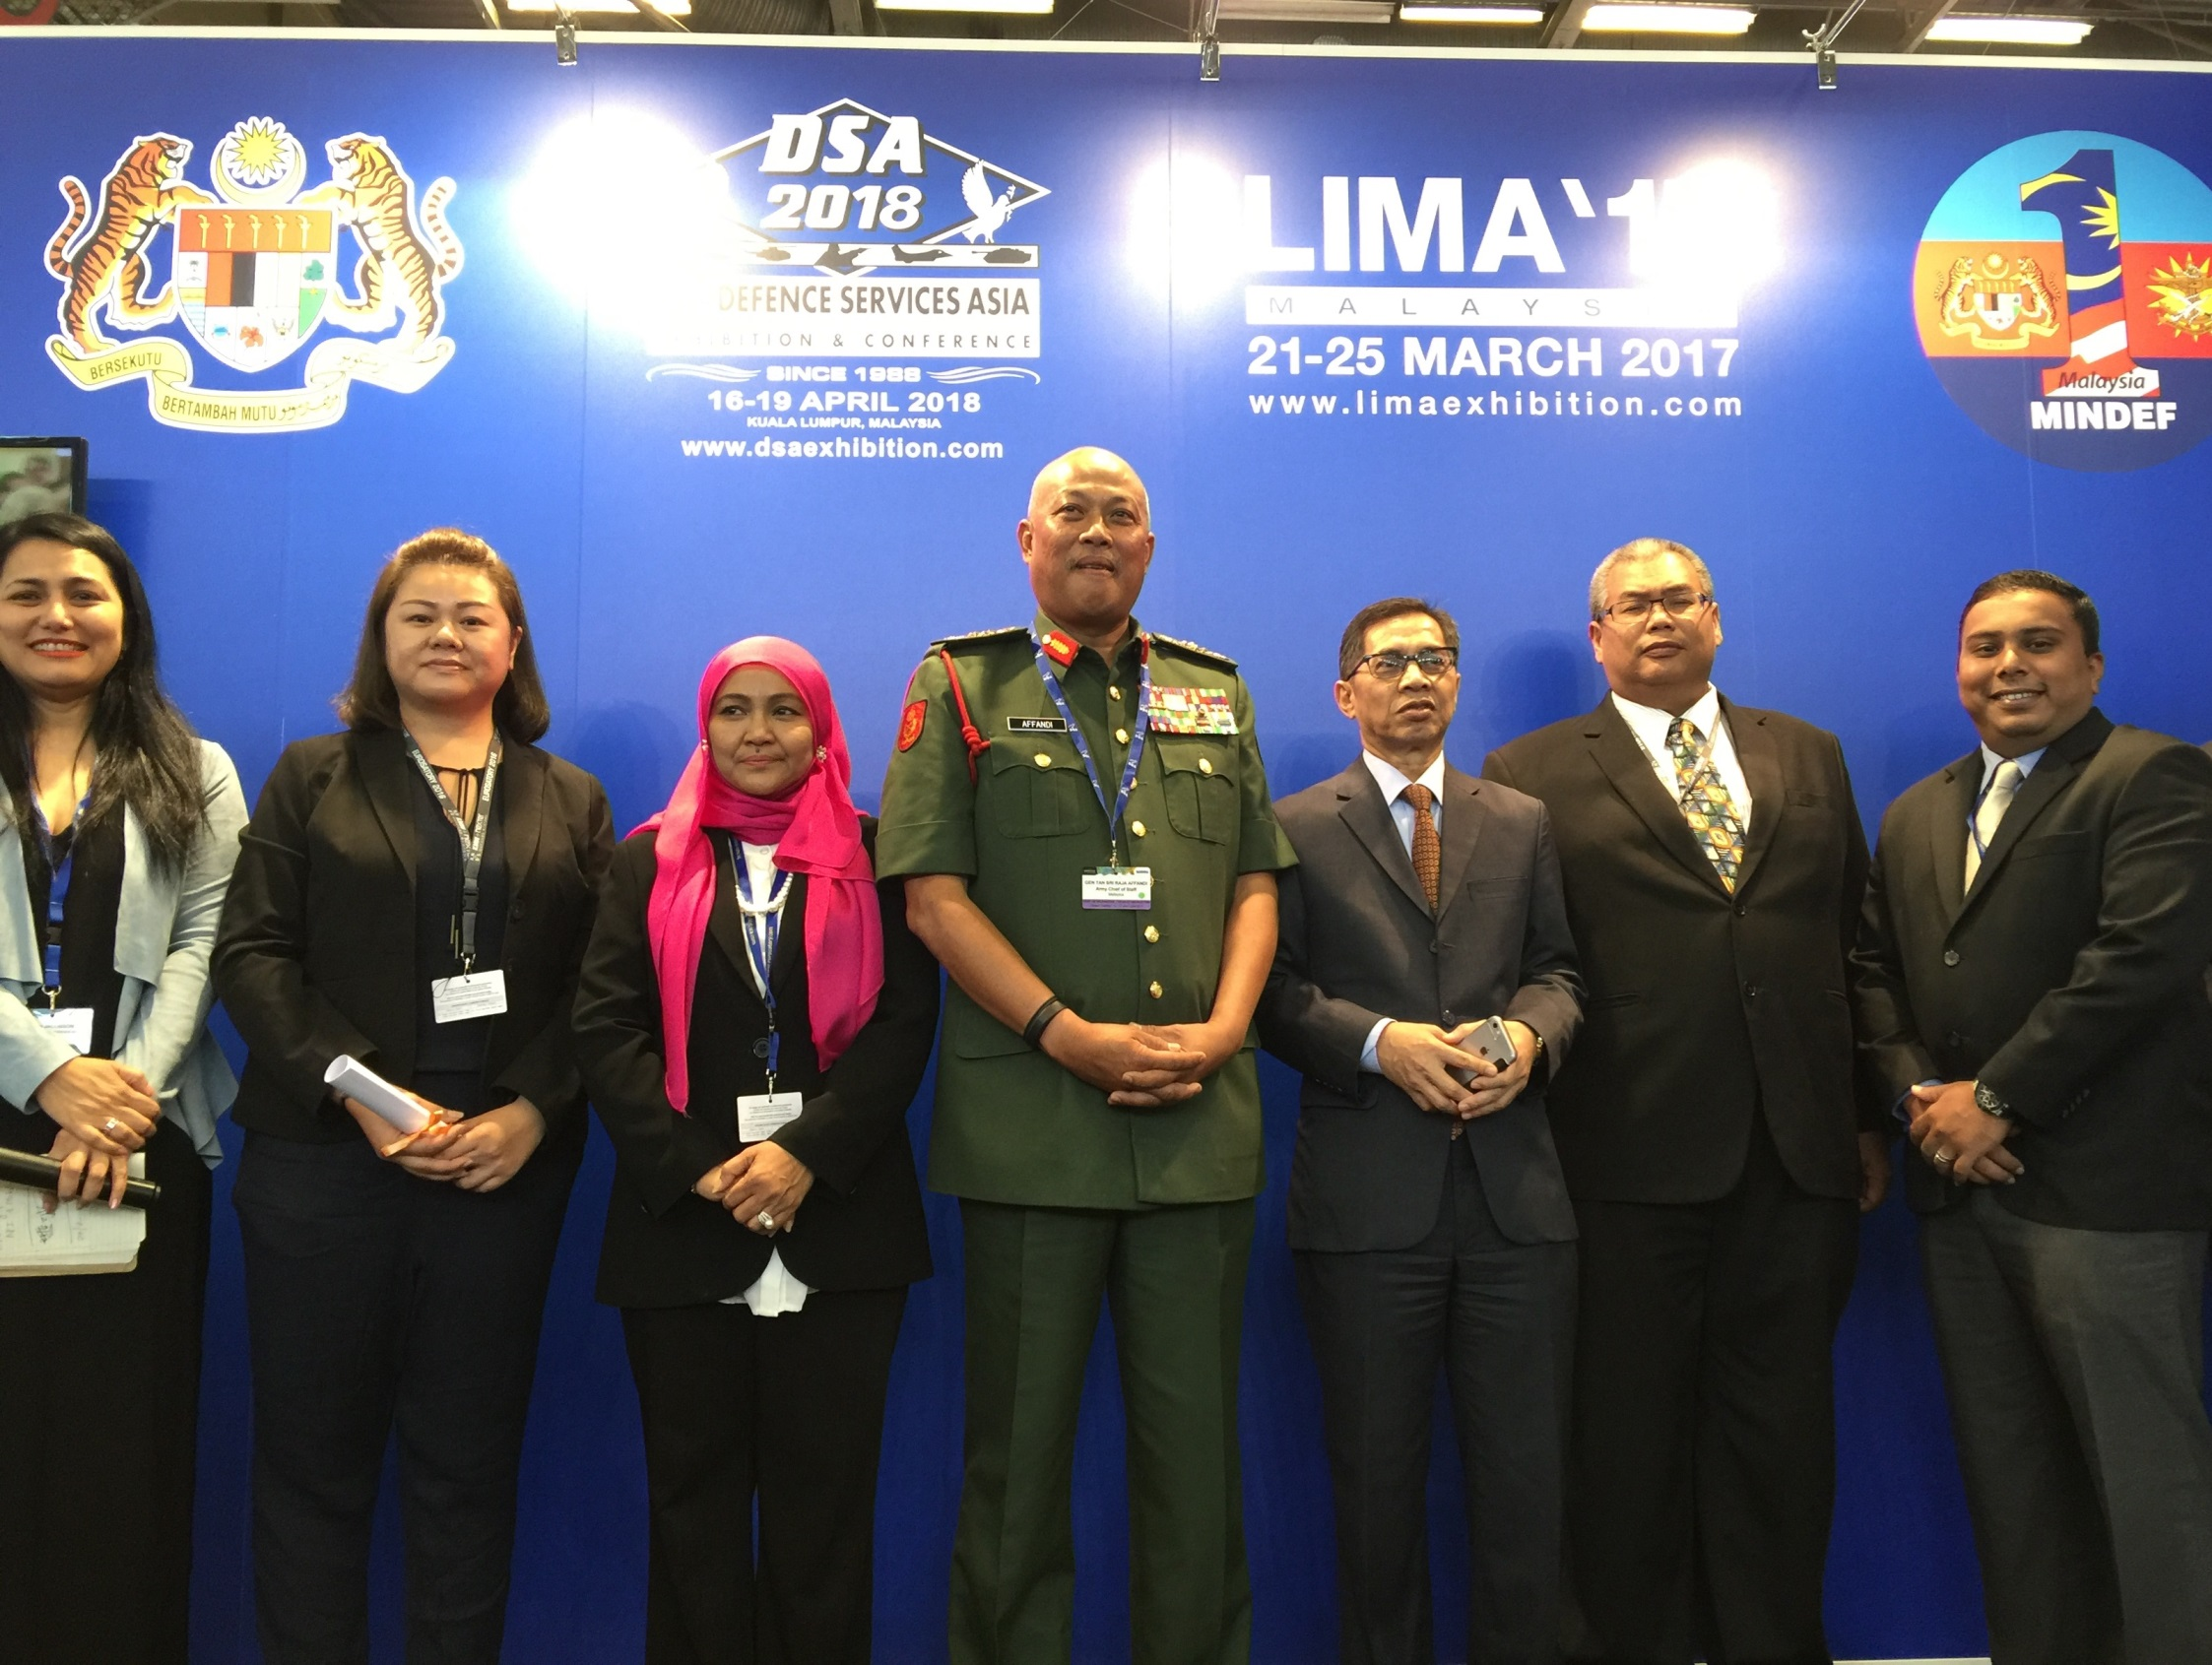 Picture 2 - LIMA '17 Contractor Award Ceremony